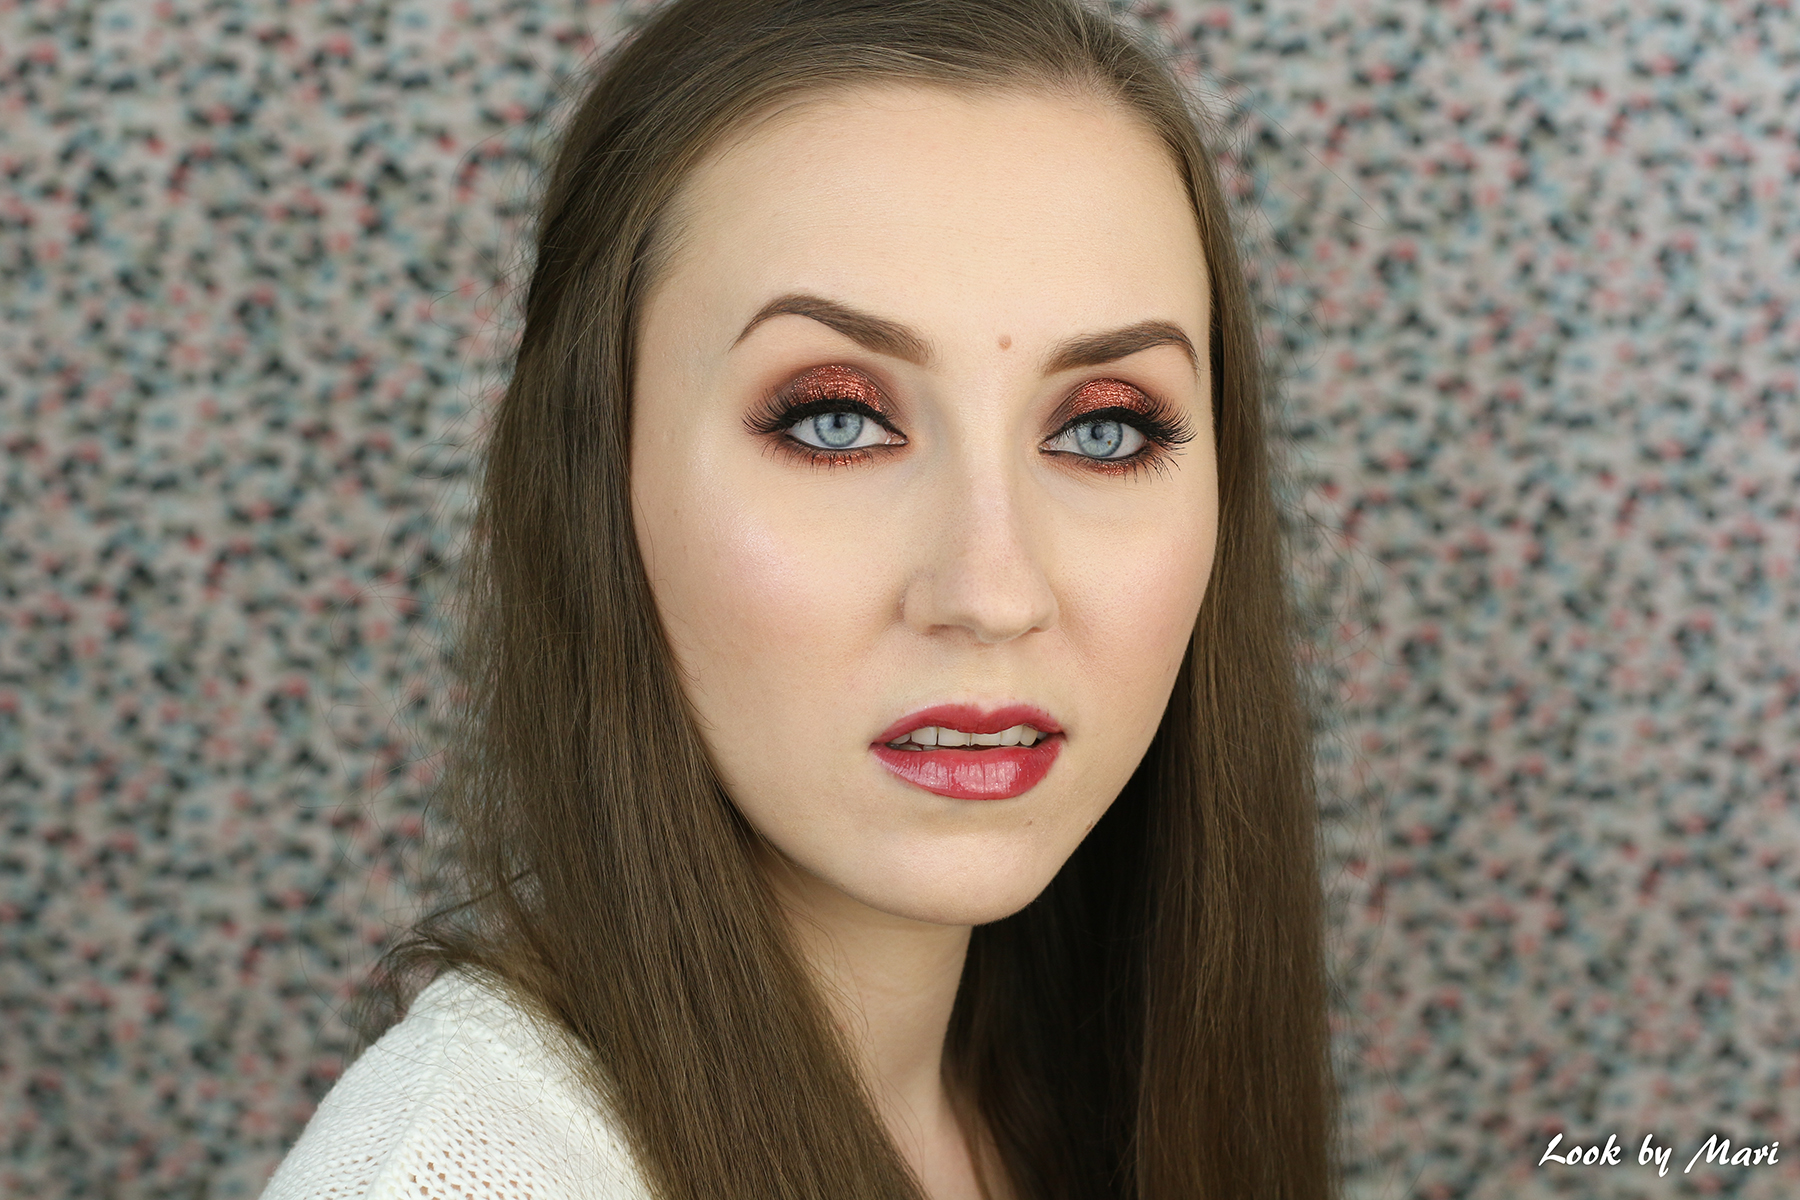 3 copper glitter eye makeup inspiration ideas kuparinen glitteri silmämeikki